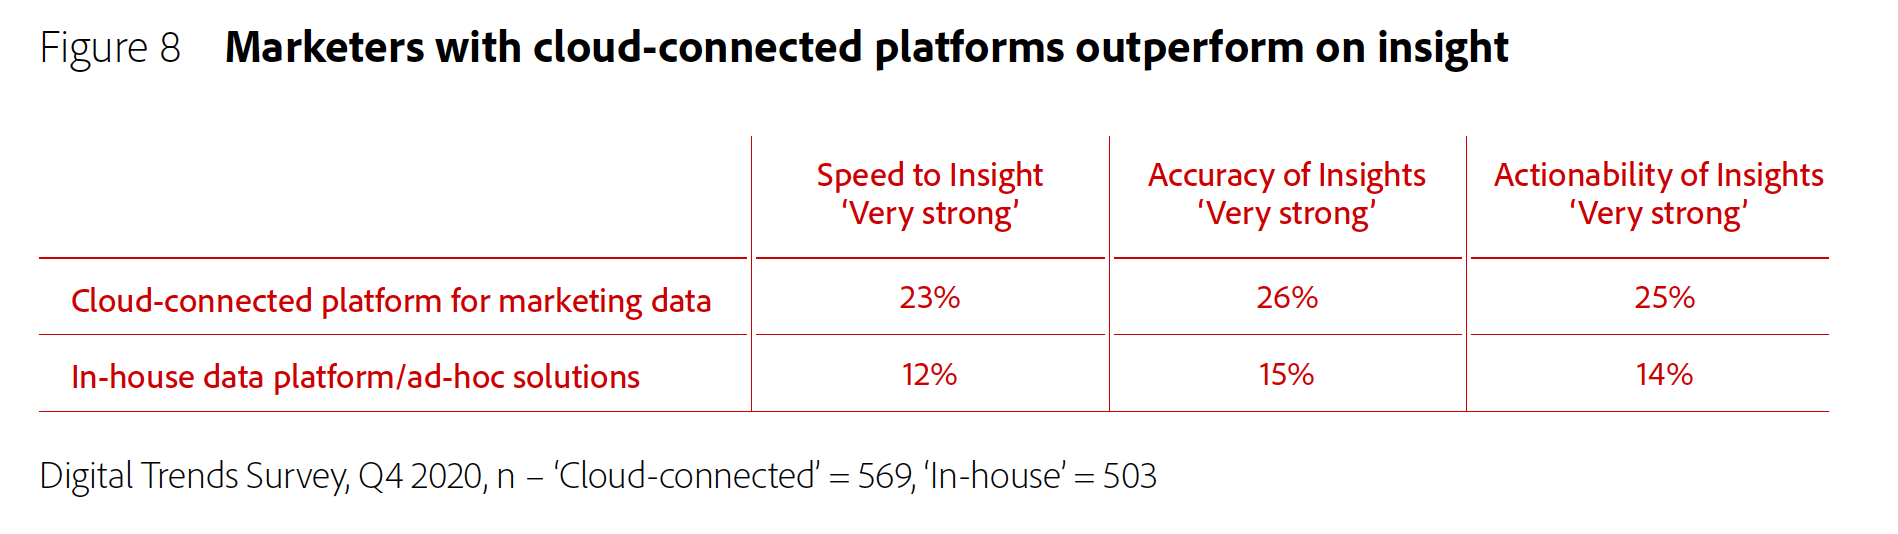 Figure 8: 503Marketers with cloud-connected platforms outperform on insight.